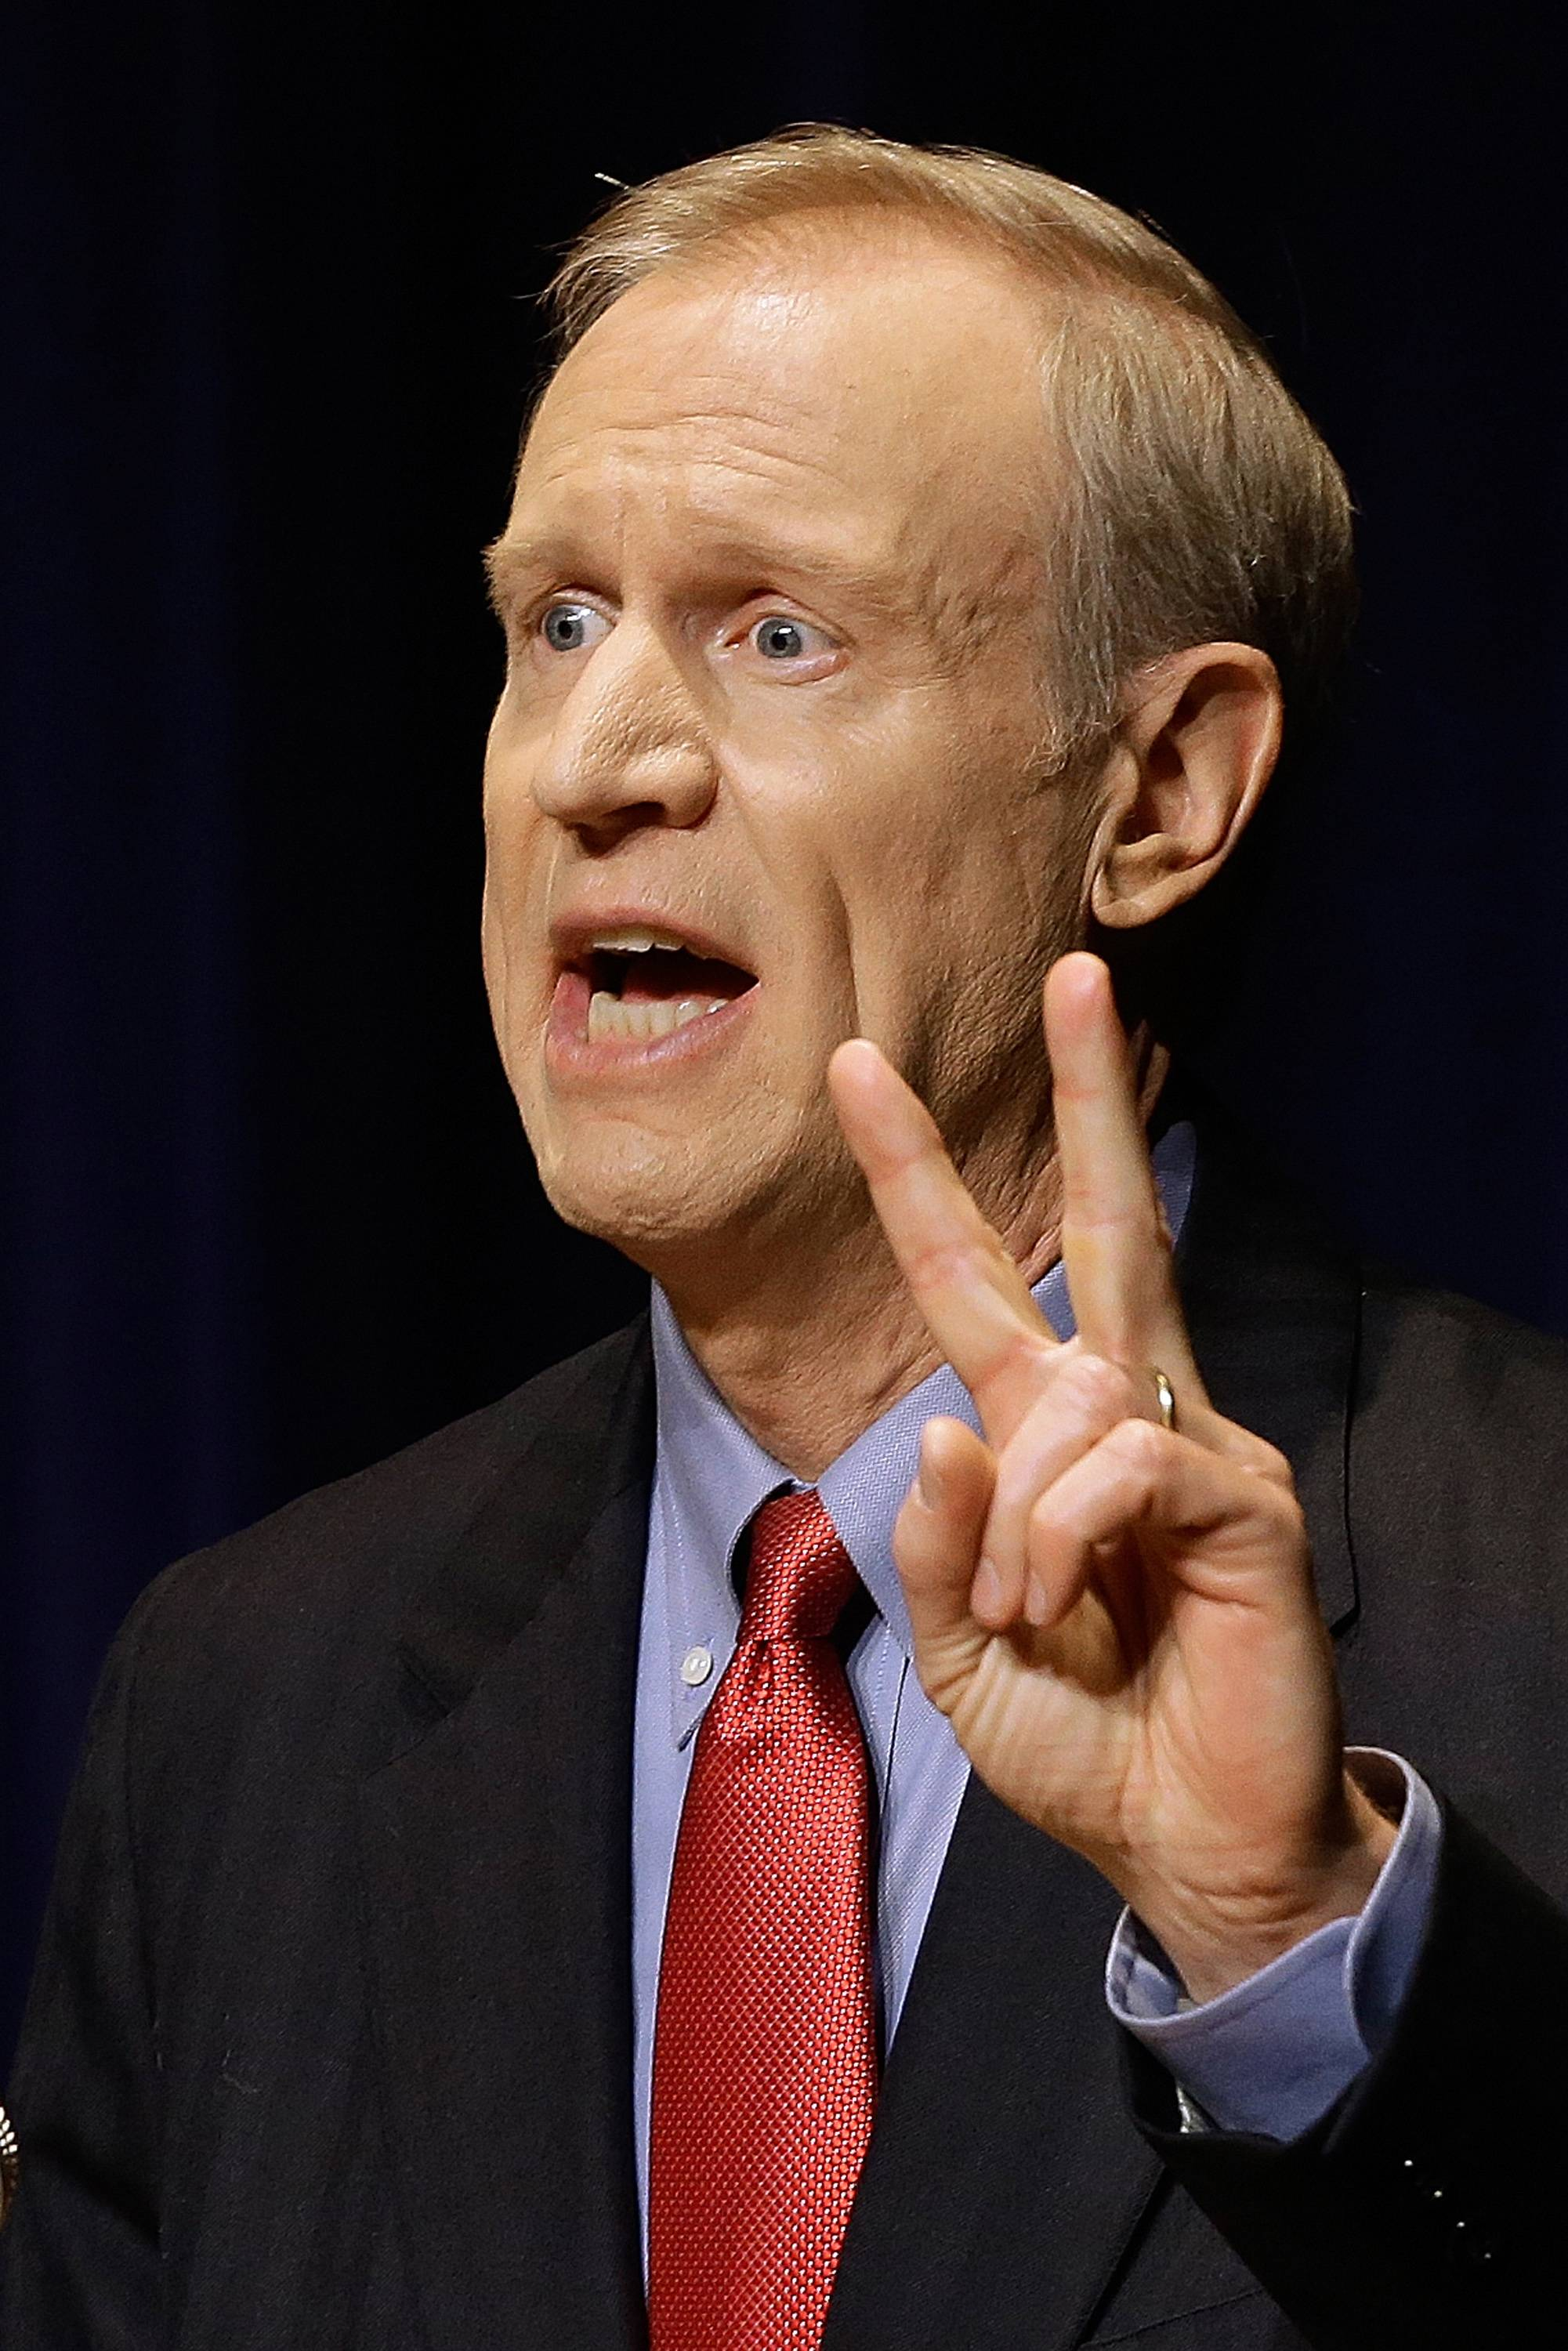 Republican gubernatorial candidate Bruce Rauner participates in a debate earlier this month in Springfield. His rivals have accused of him using his influence to get his daughter admitted to an elite Chicago public school.